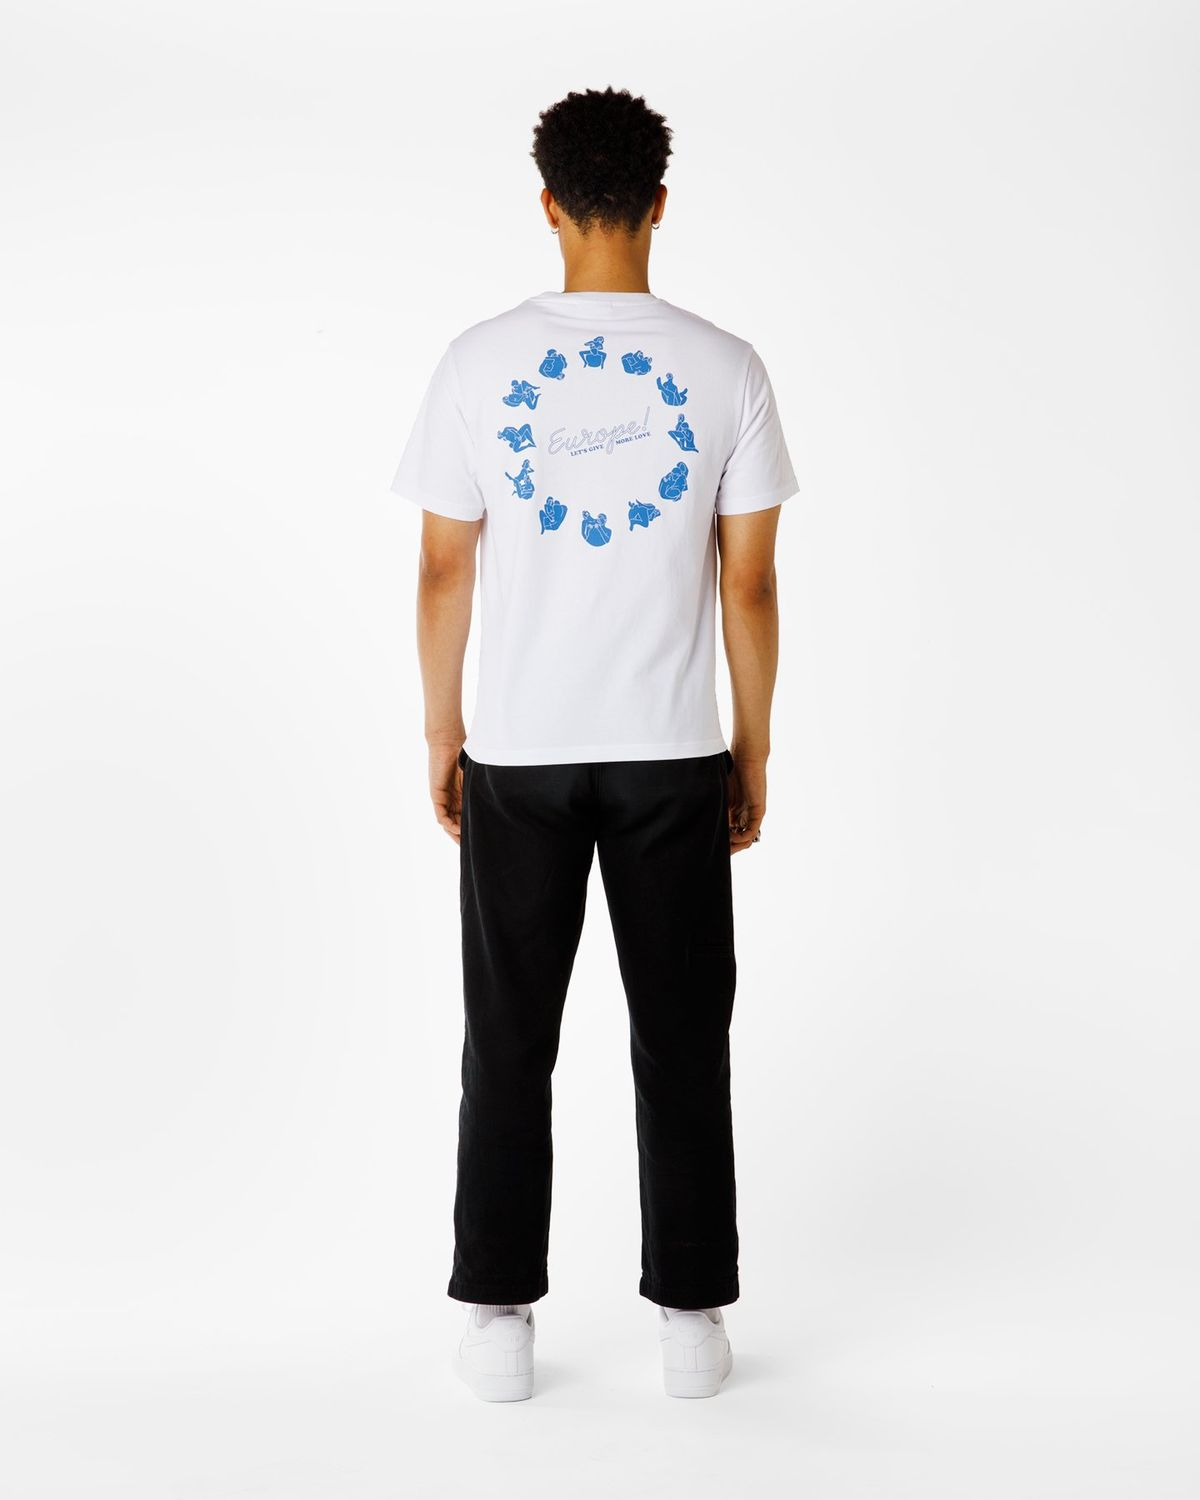 Carne Bollente  — Let's Give More Love T-Shirt White - Image 6